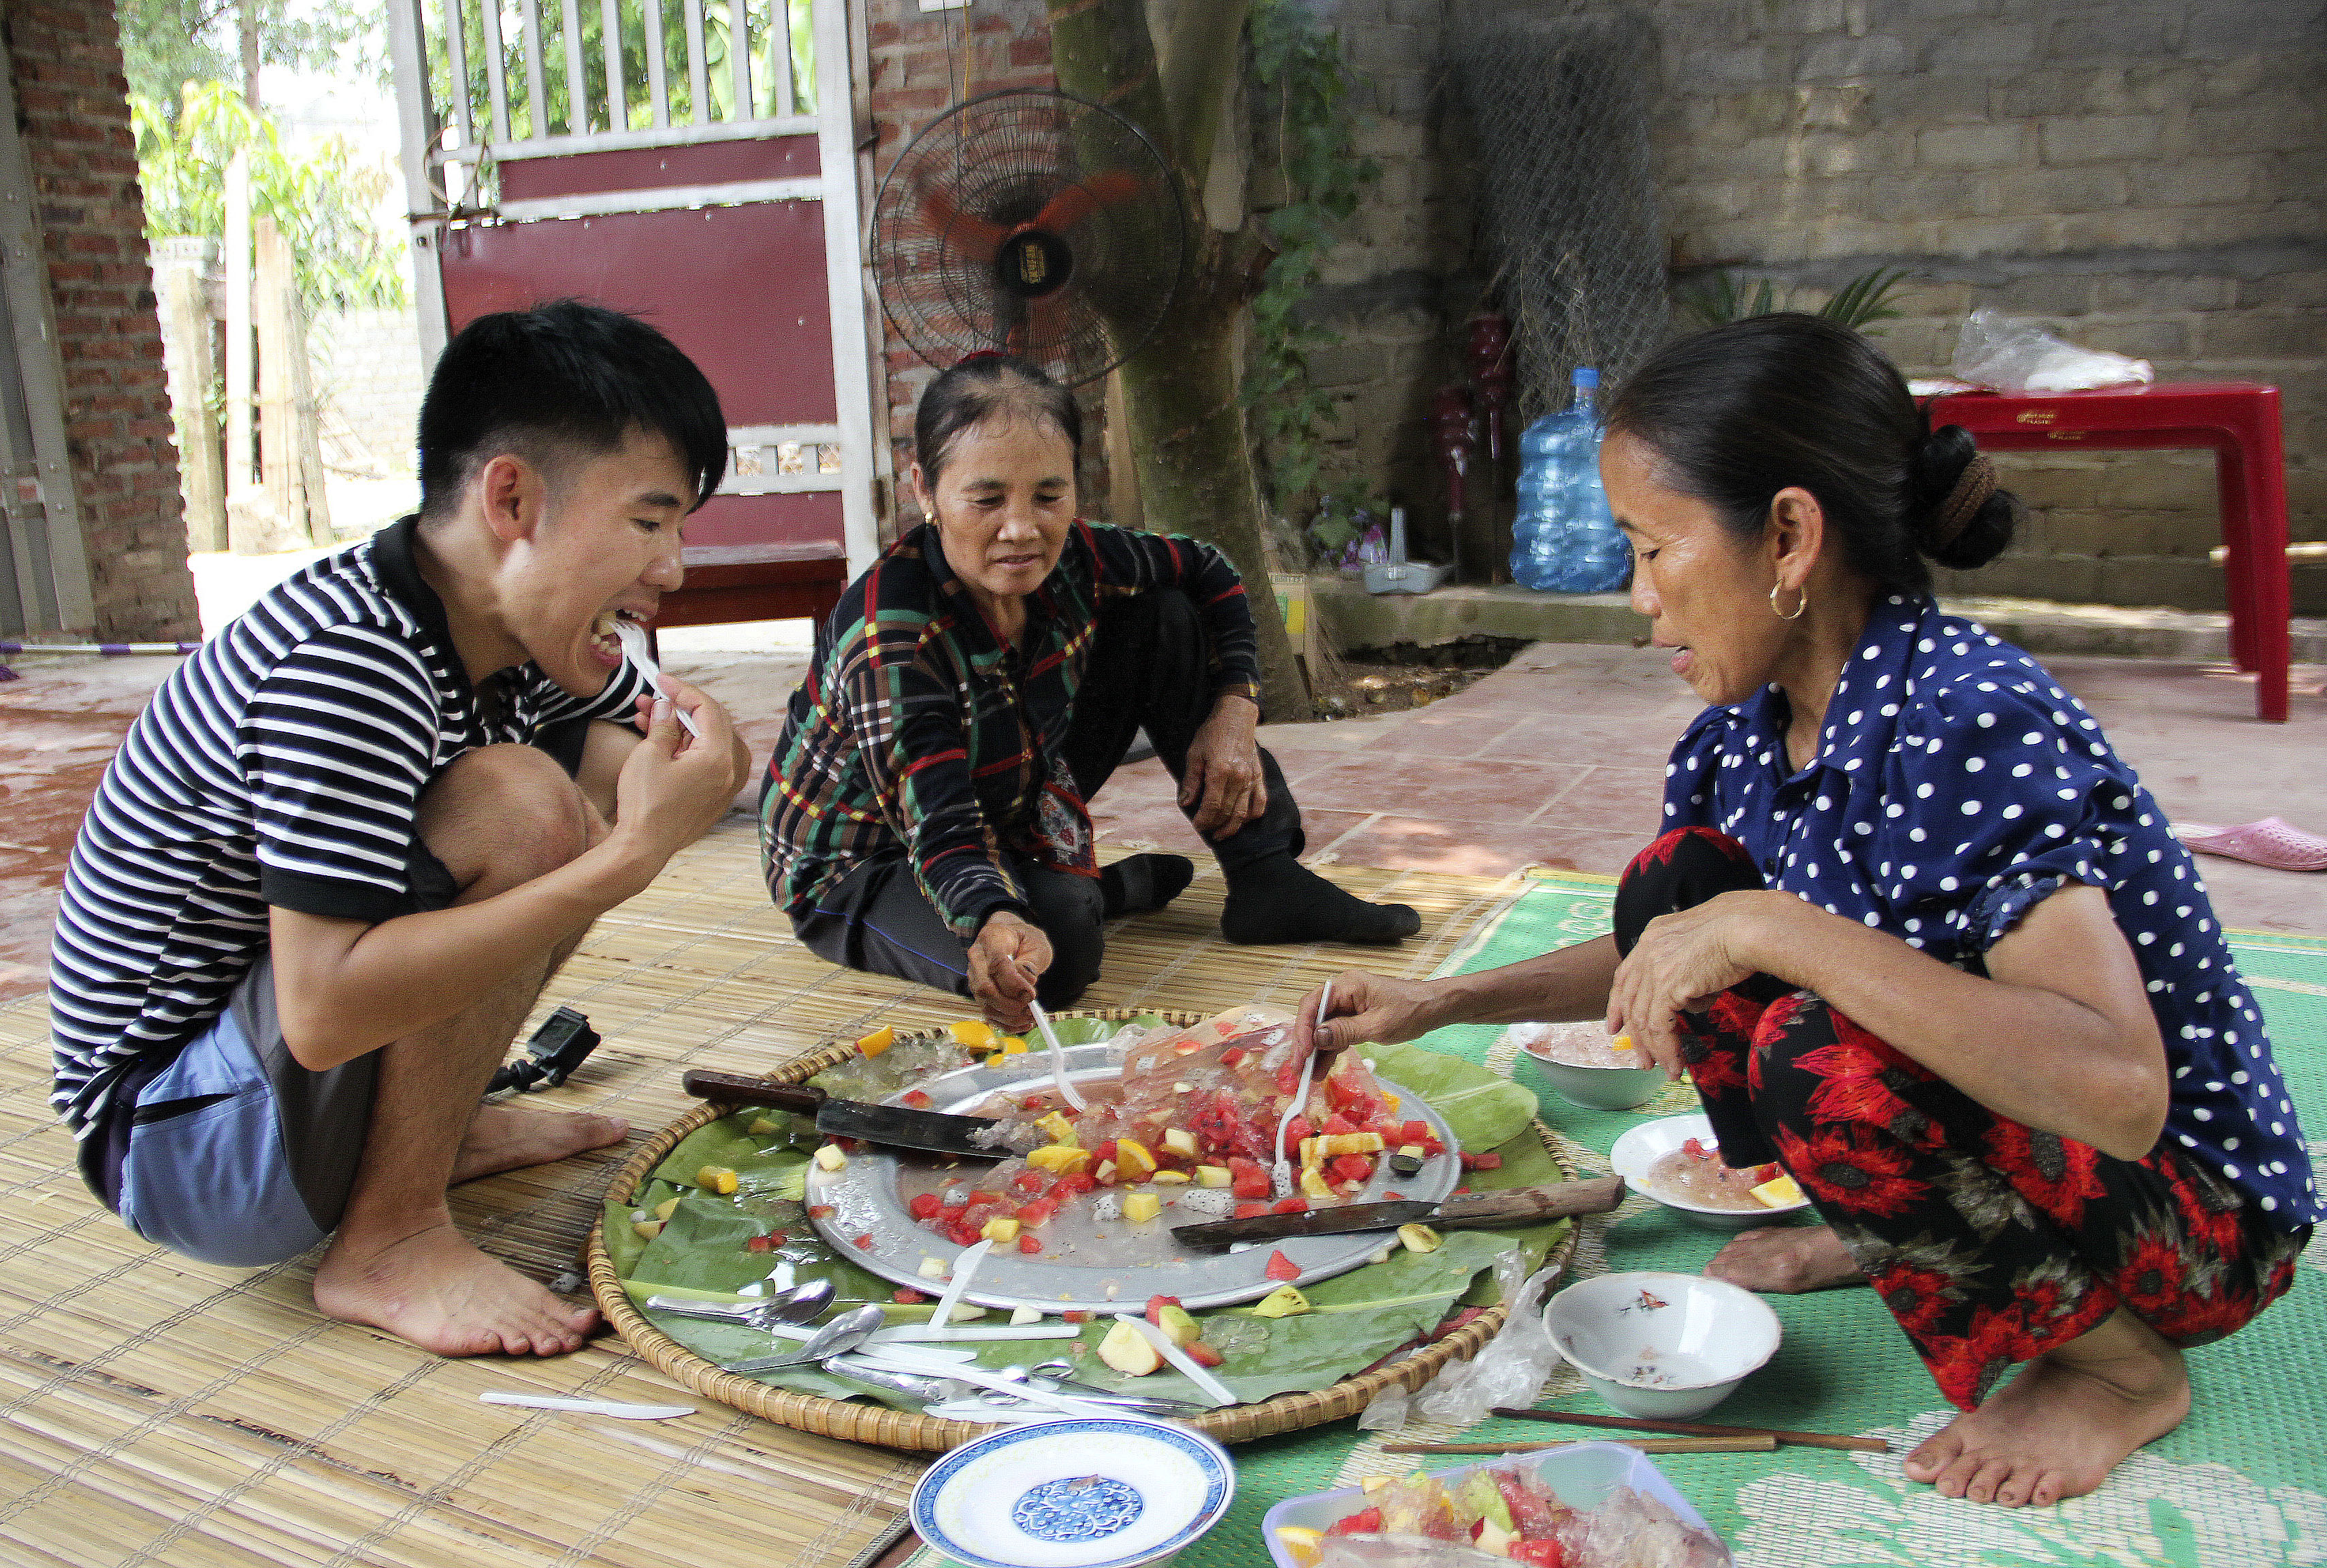 Nguyen Thi Tan, 51, right, and her son, Nguyen Van Hung, 27, left, grab a bite to eat along with a friend from their village, following the taping of an episode of her popular YouTube channel in Xuan Huong, Vietnam, on Friday, July 19, 2019.